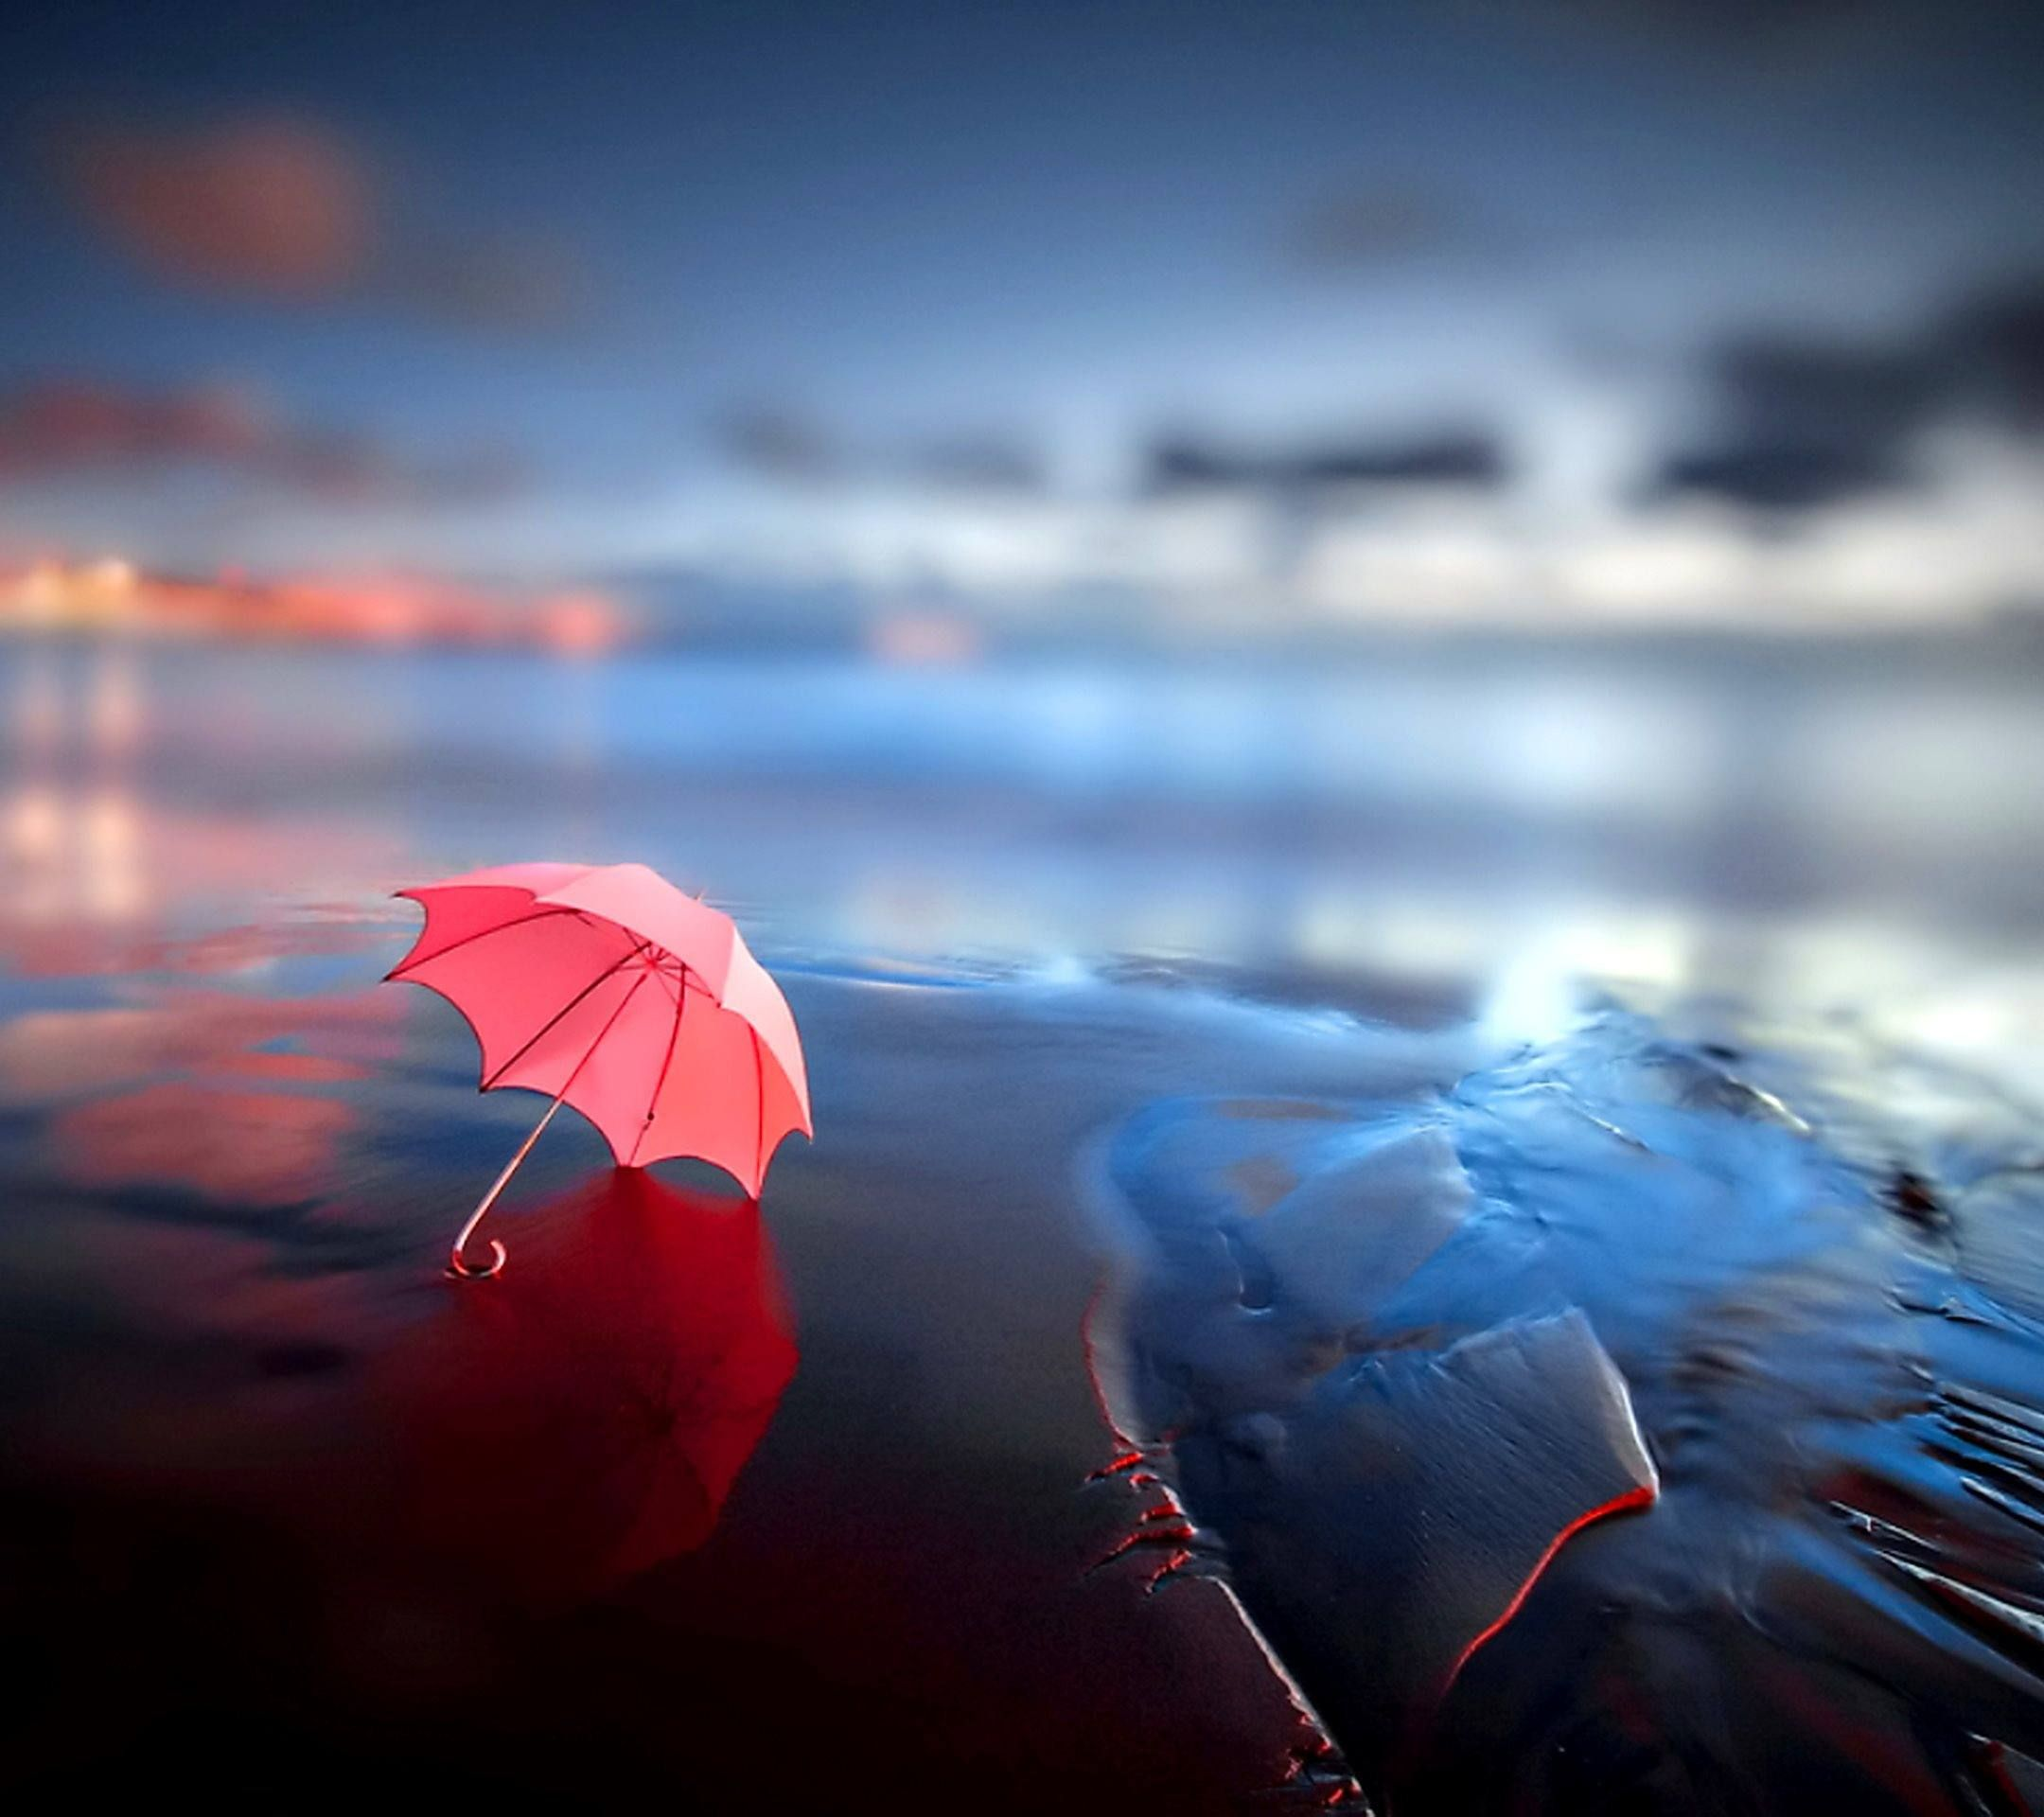 red umbrella on beach wallpaper for android 8194 wallpaper high